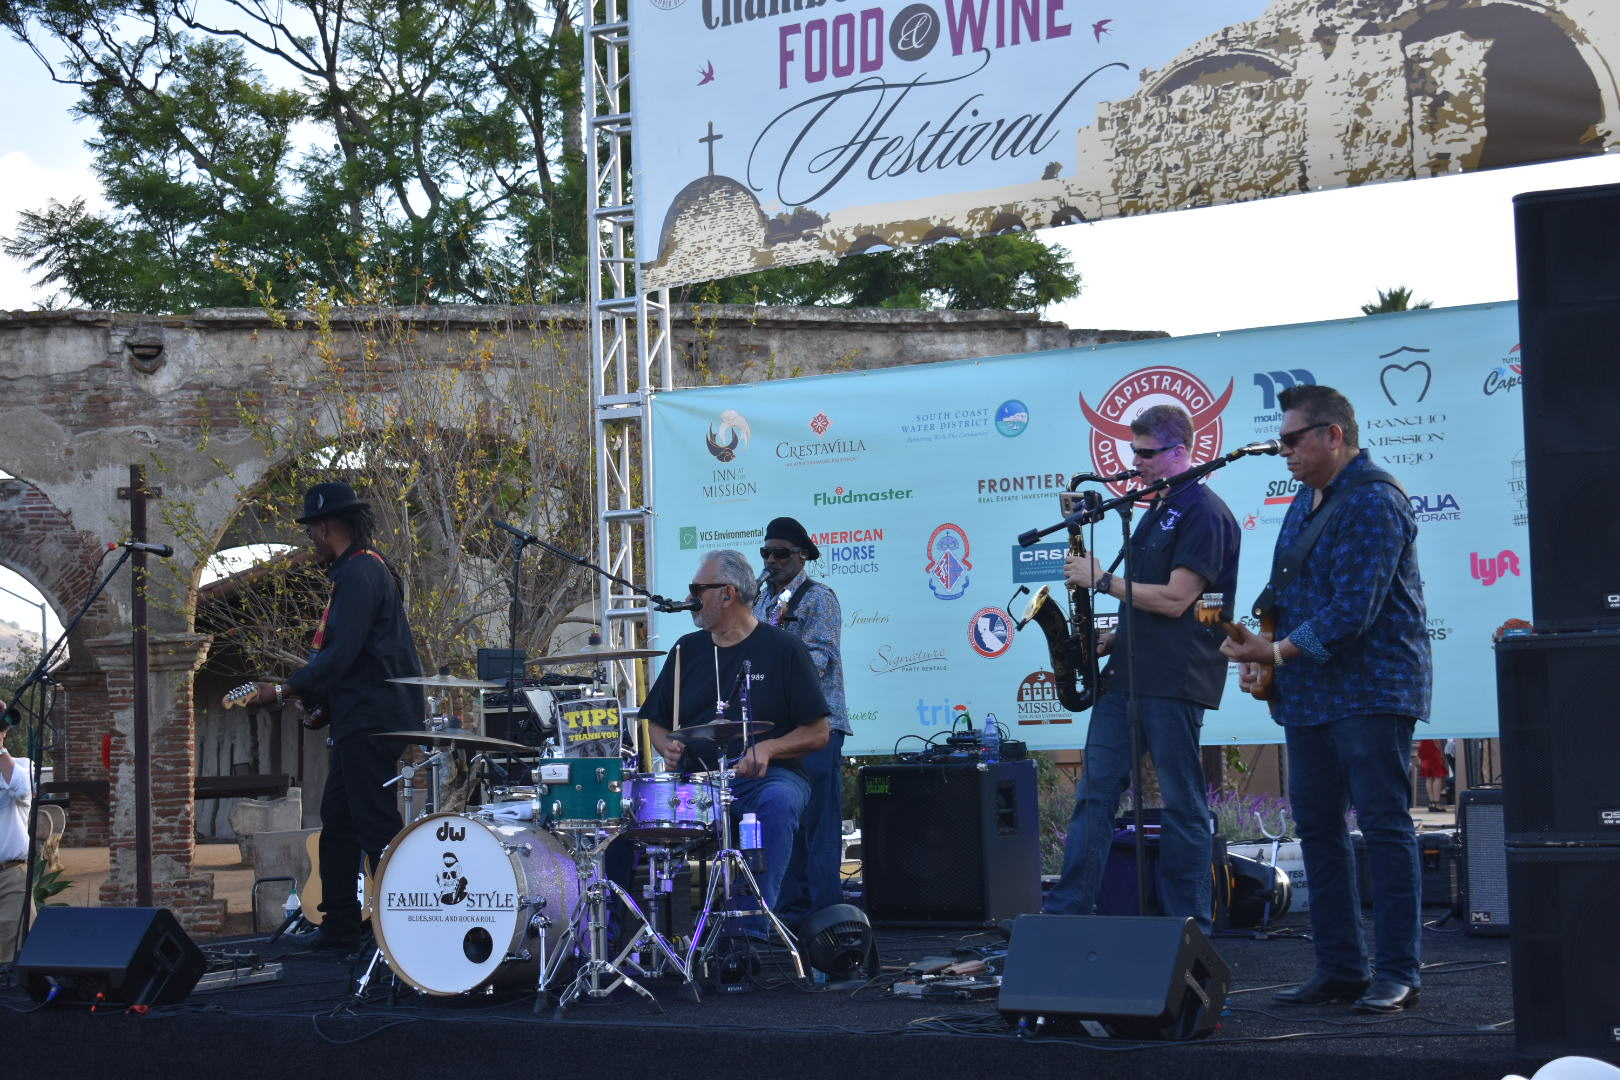 The band family style does some practice sets before the Vintage Food & Wine Festival gets underway on Saturday, Oct. 6. Photo: Alex Groves